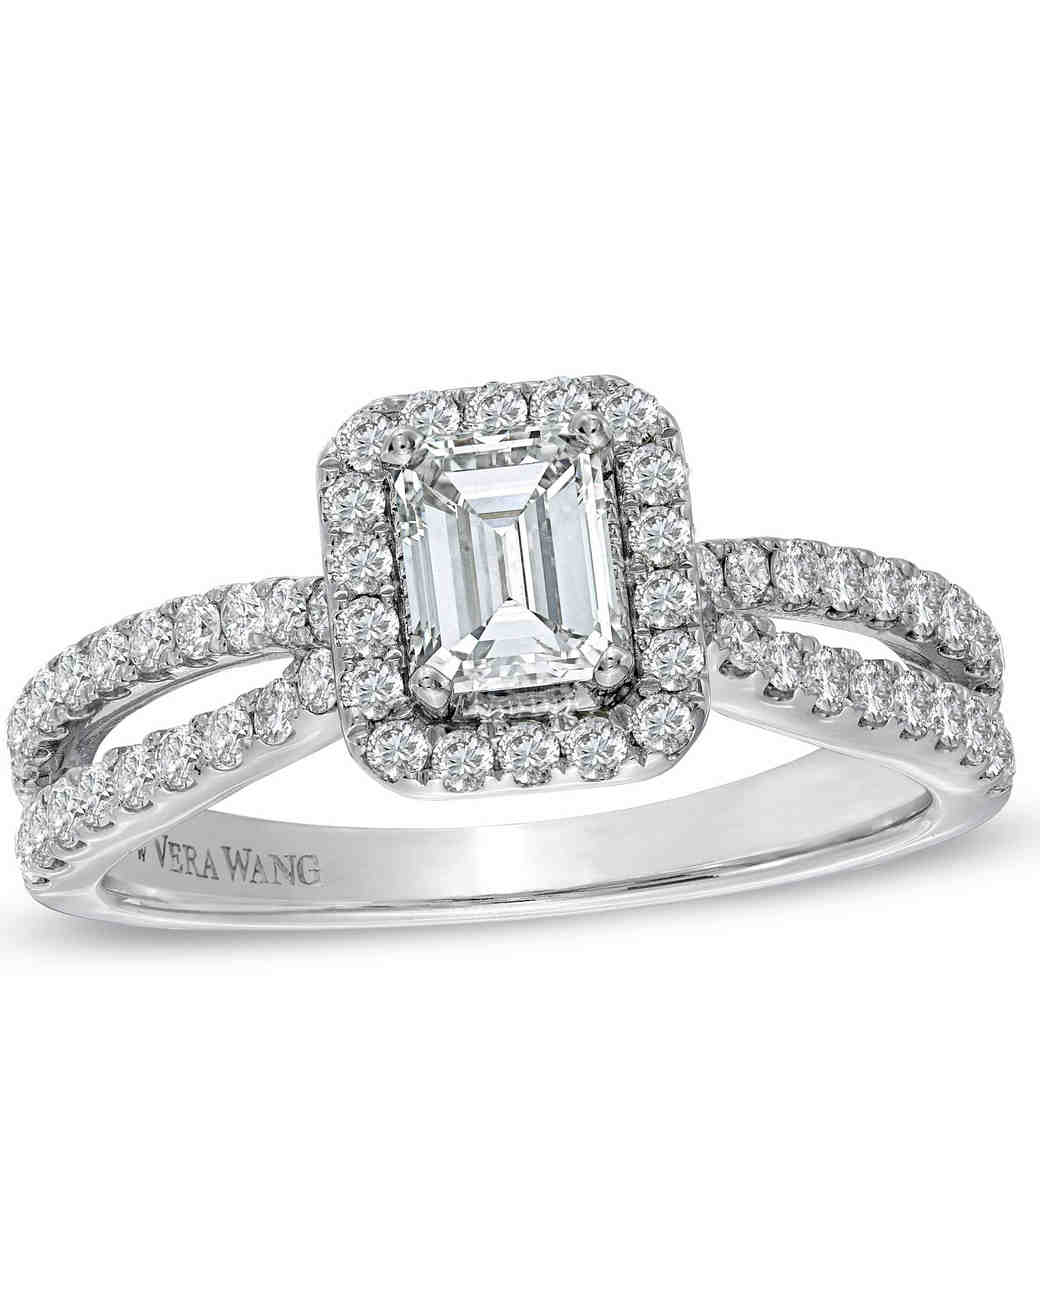 21 Best New Engagement Ring Designers to Know Now | Martha Stewart ...